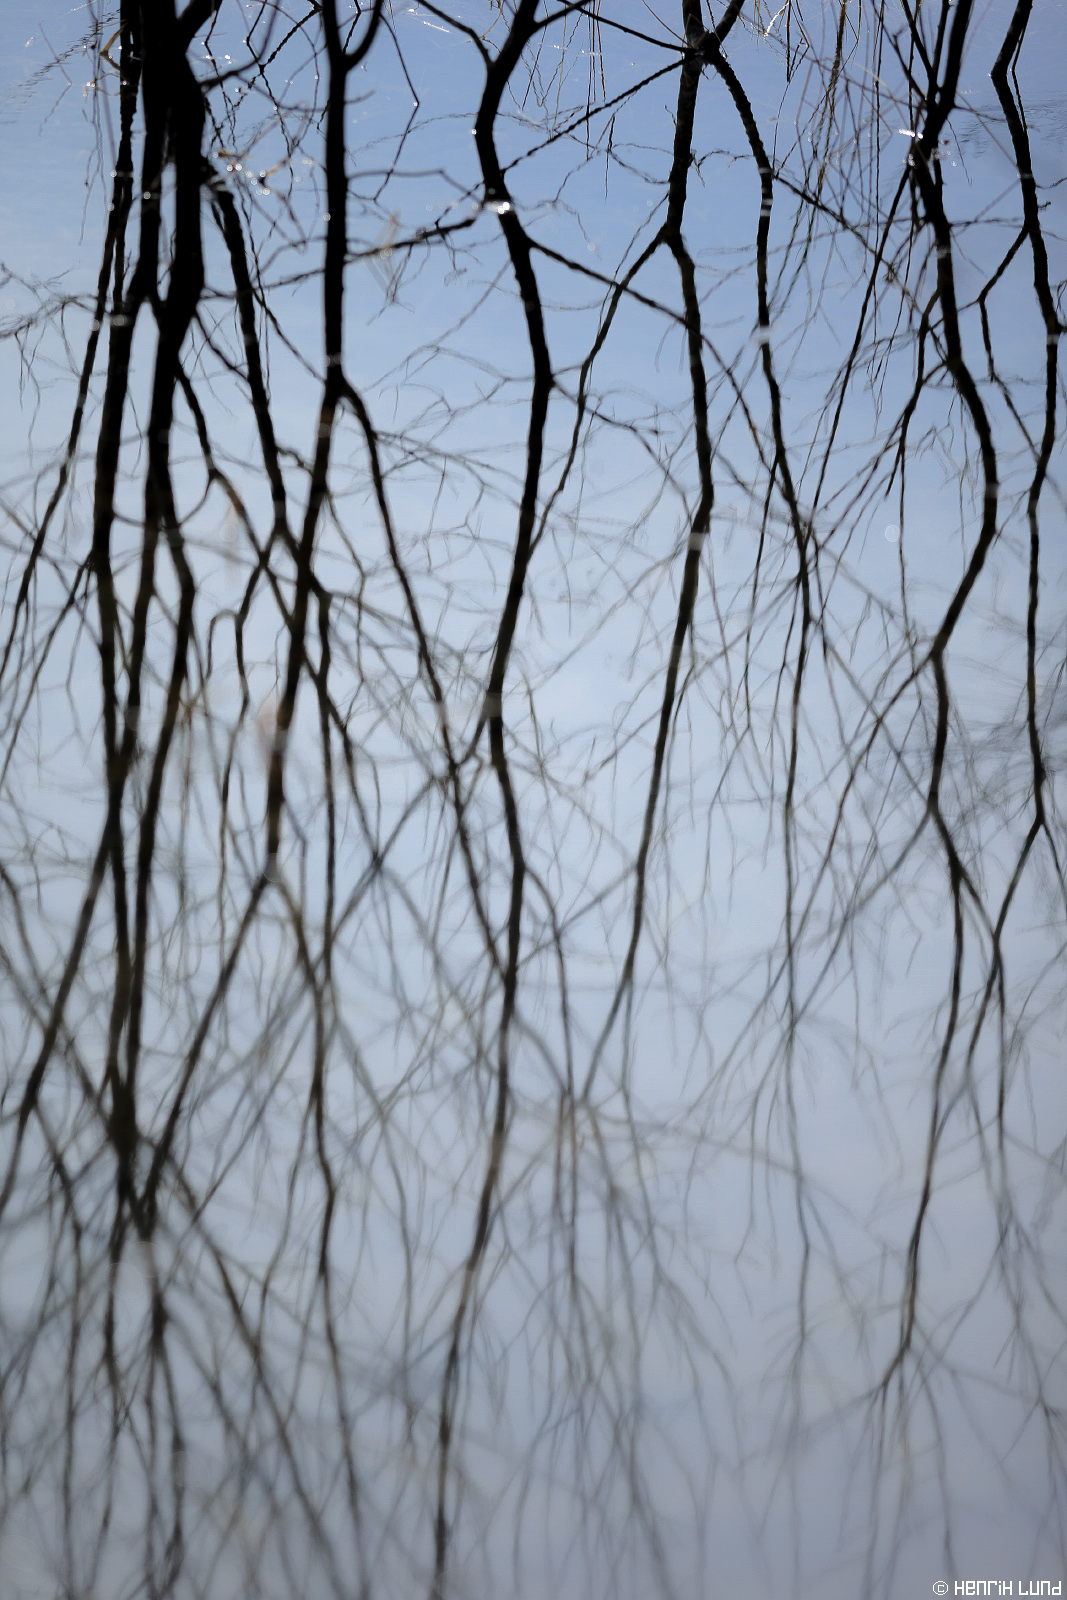 Abstract branches mirroring in the spring flood. Lappträsk, Finland, April 2015.